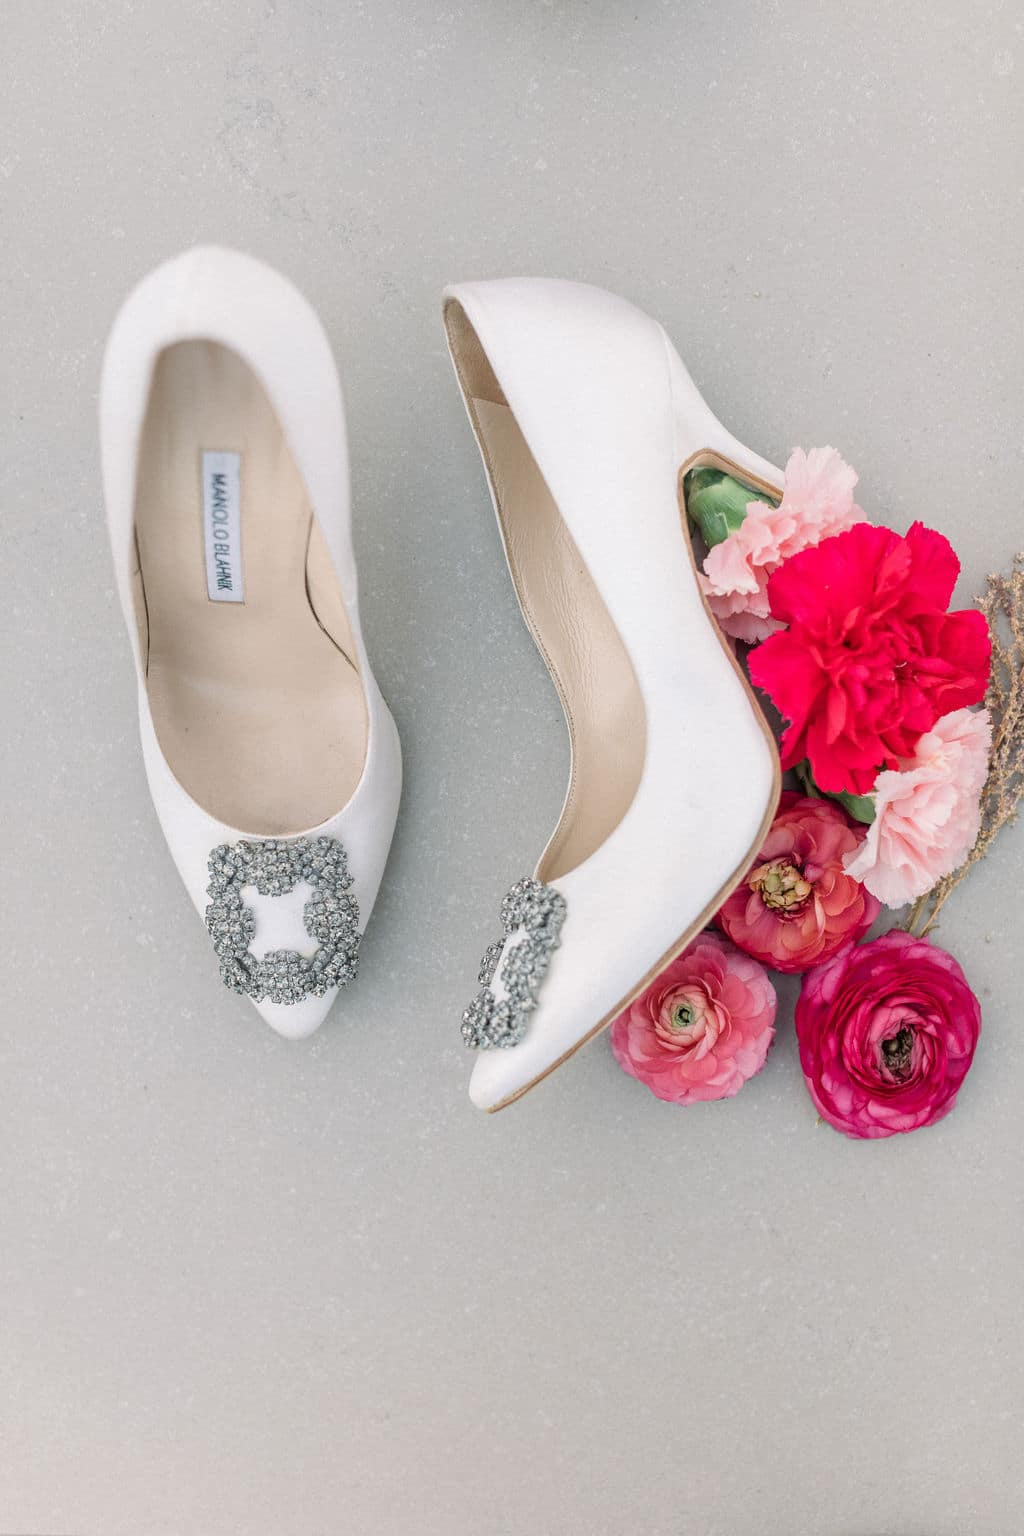 nude bridal shoe with bling and red roses